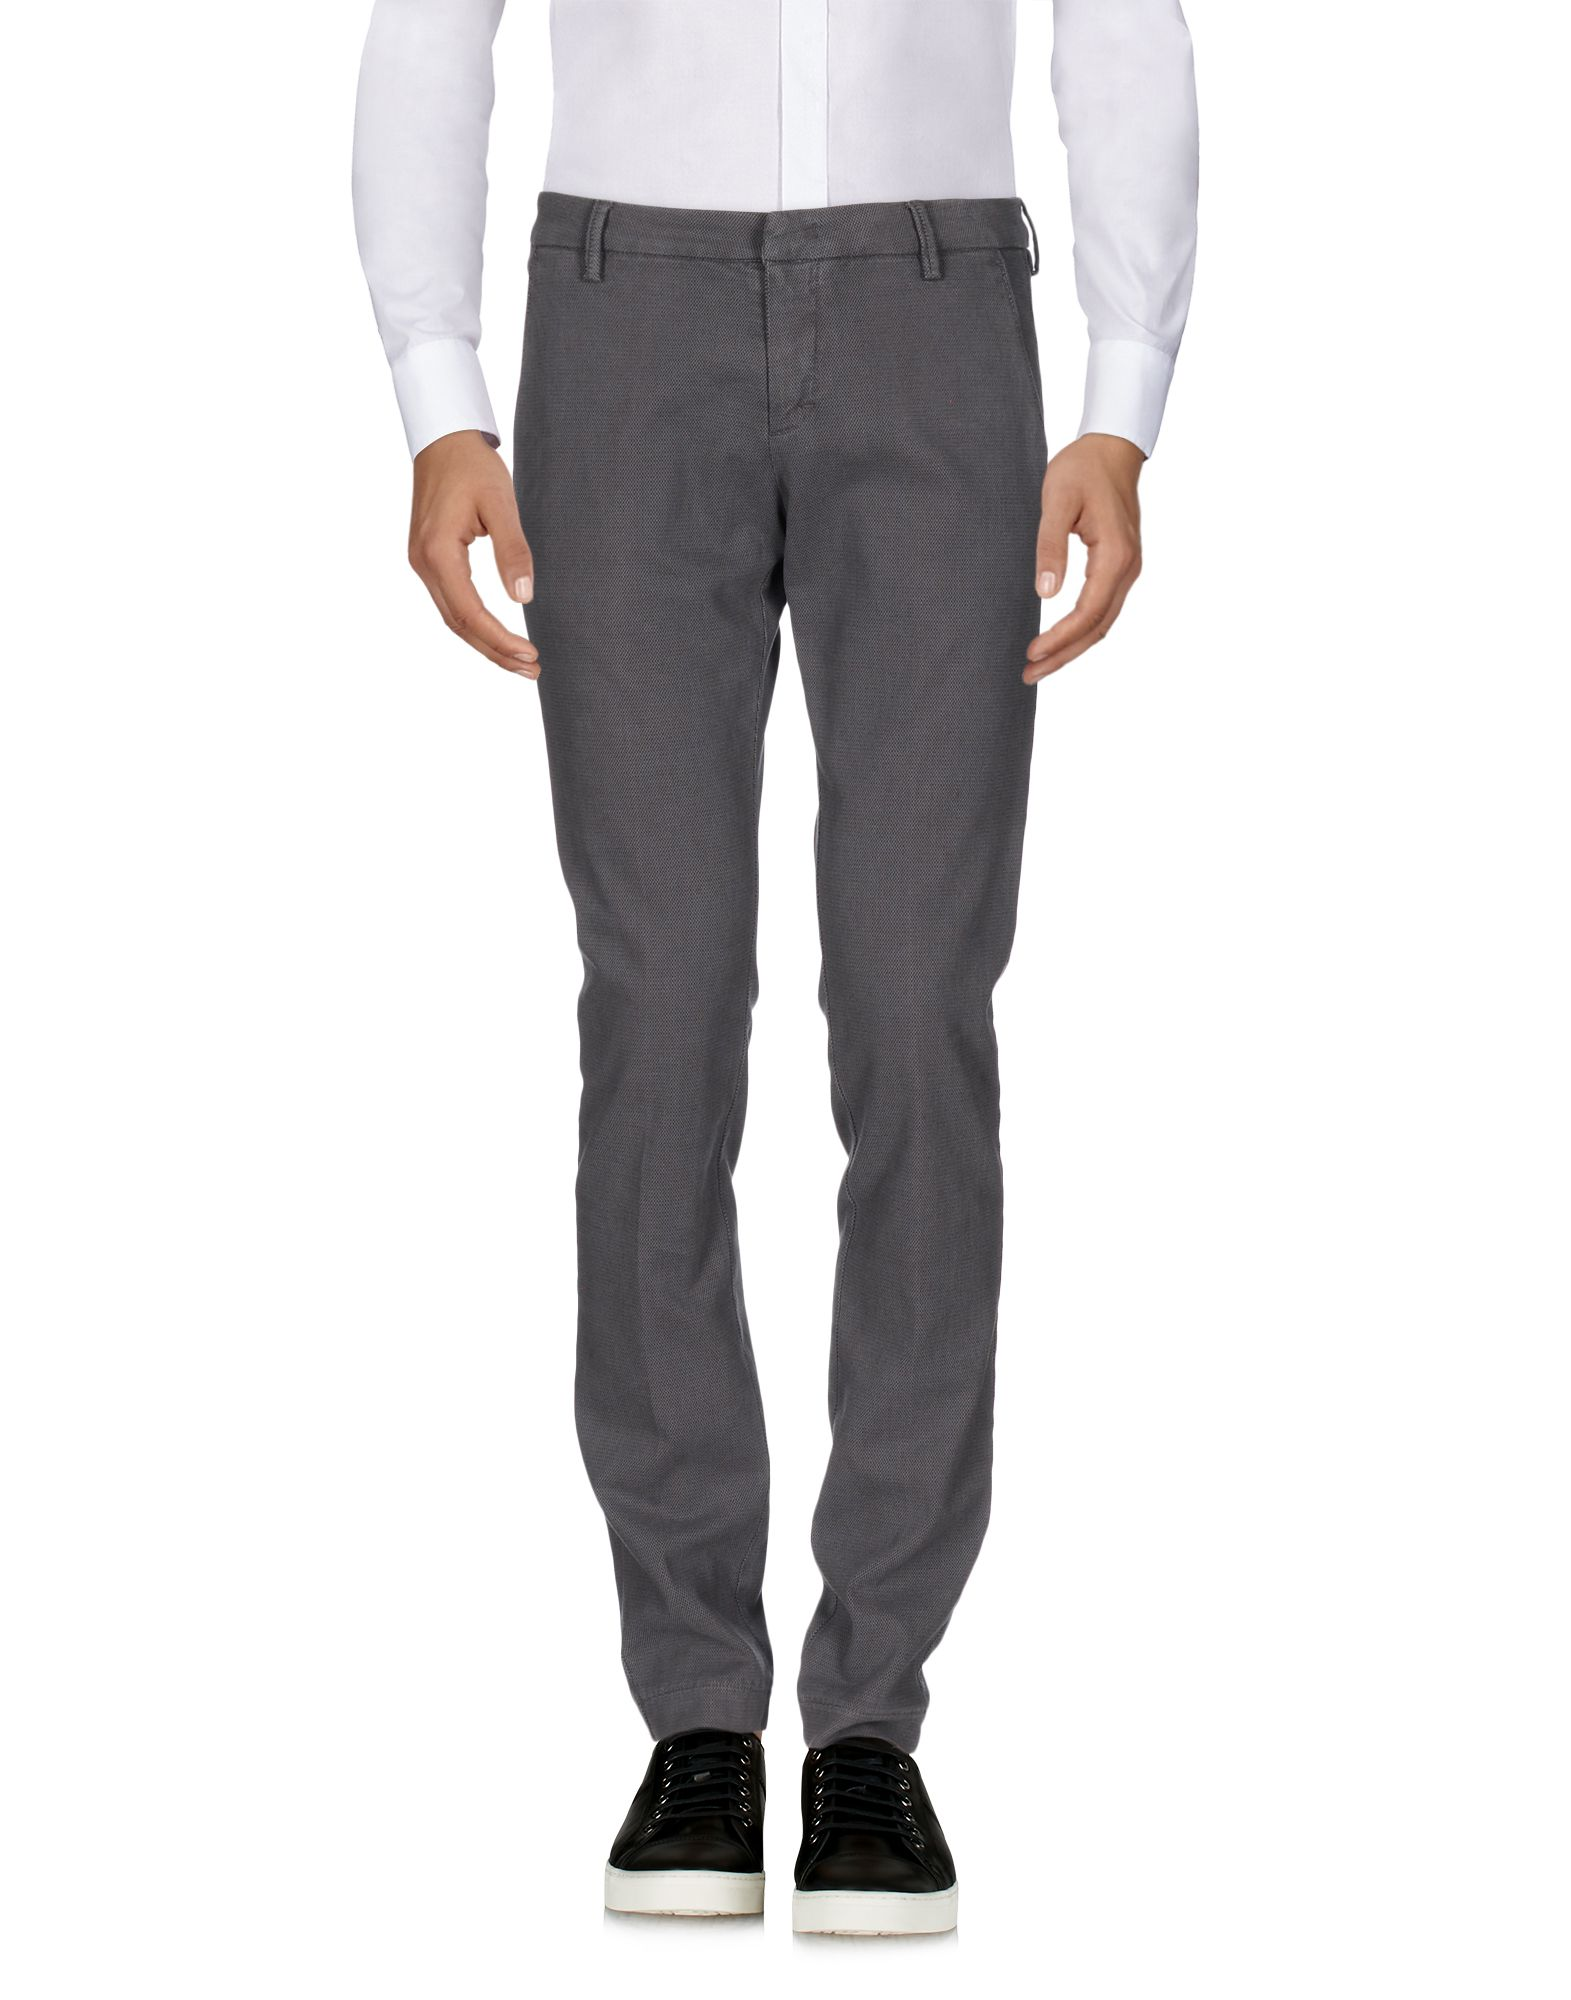 Acquista online Coal Michael su Chinos Uomo ZwItqxxz